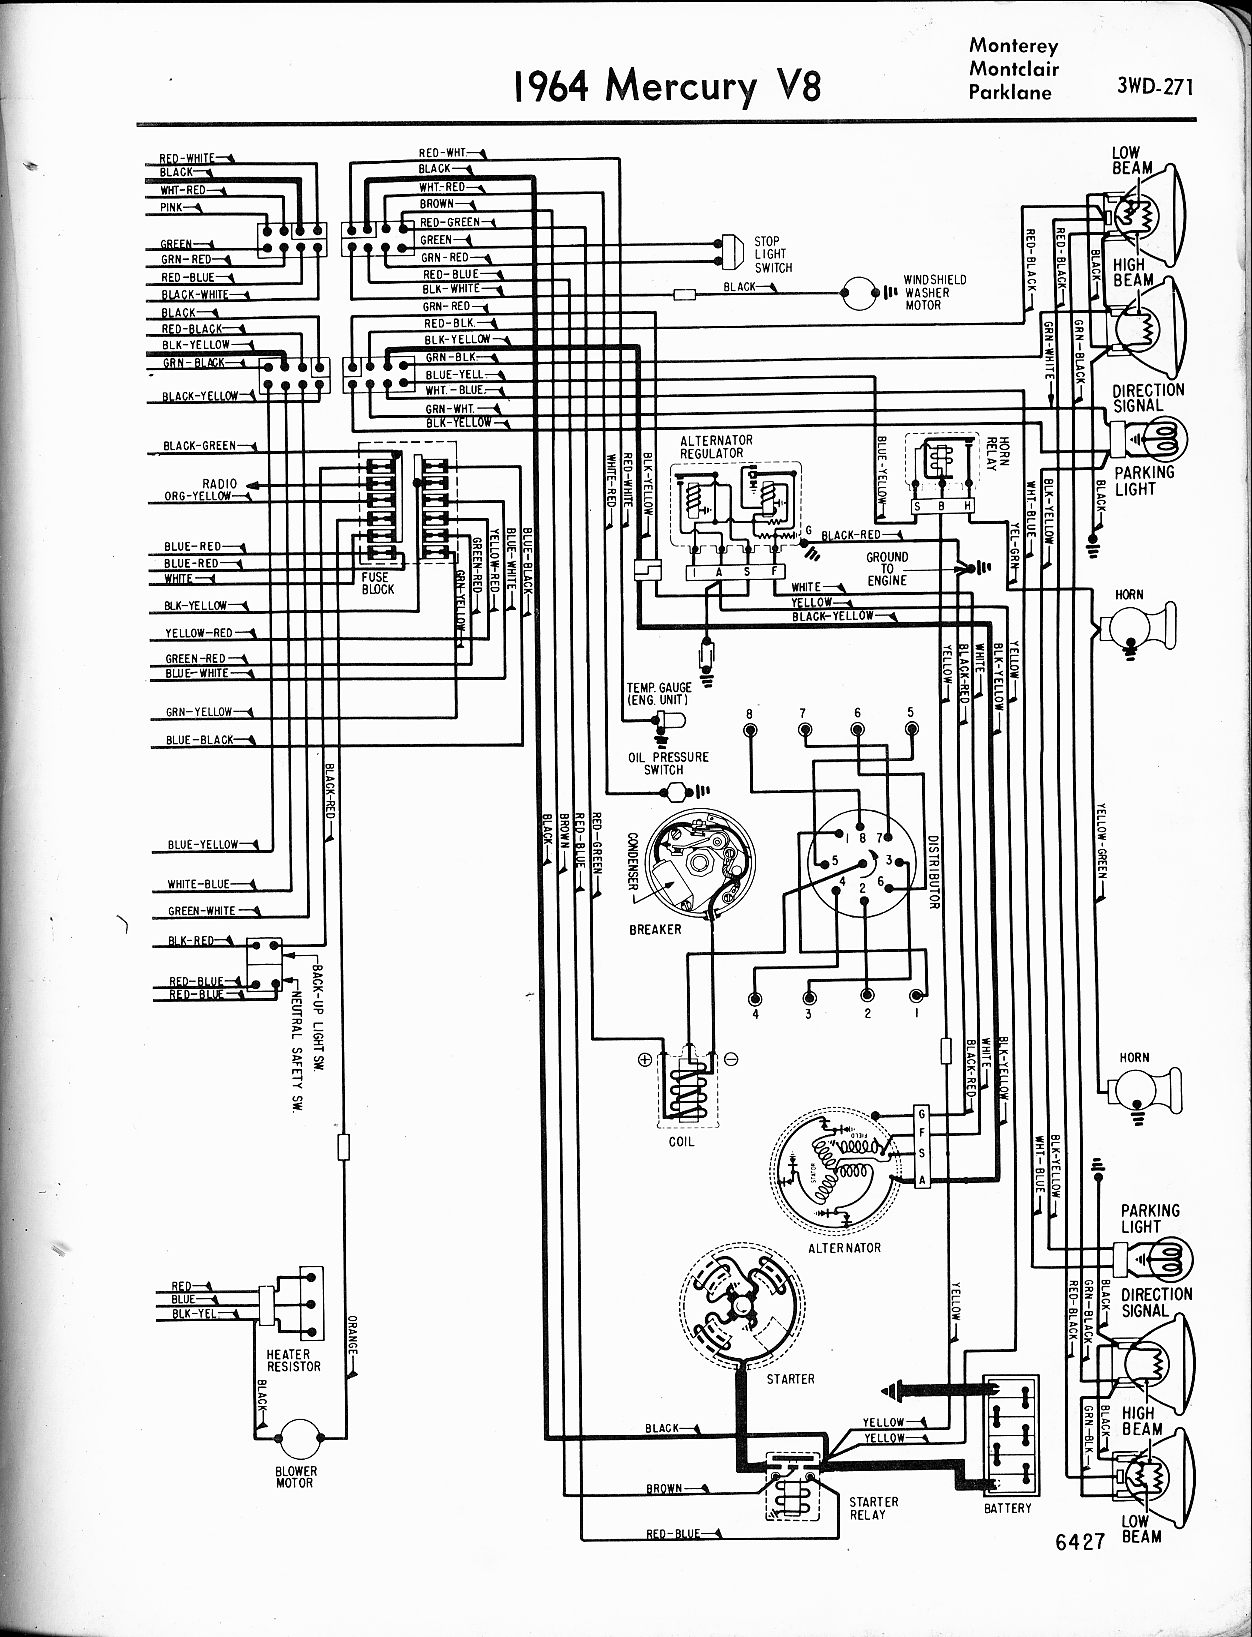 [WRG-7799] 1955 Mercury Wiring Diagram